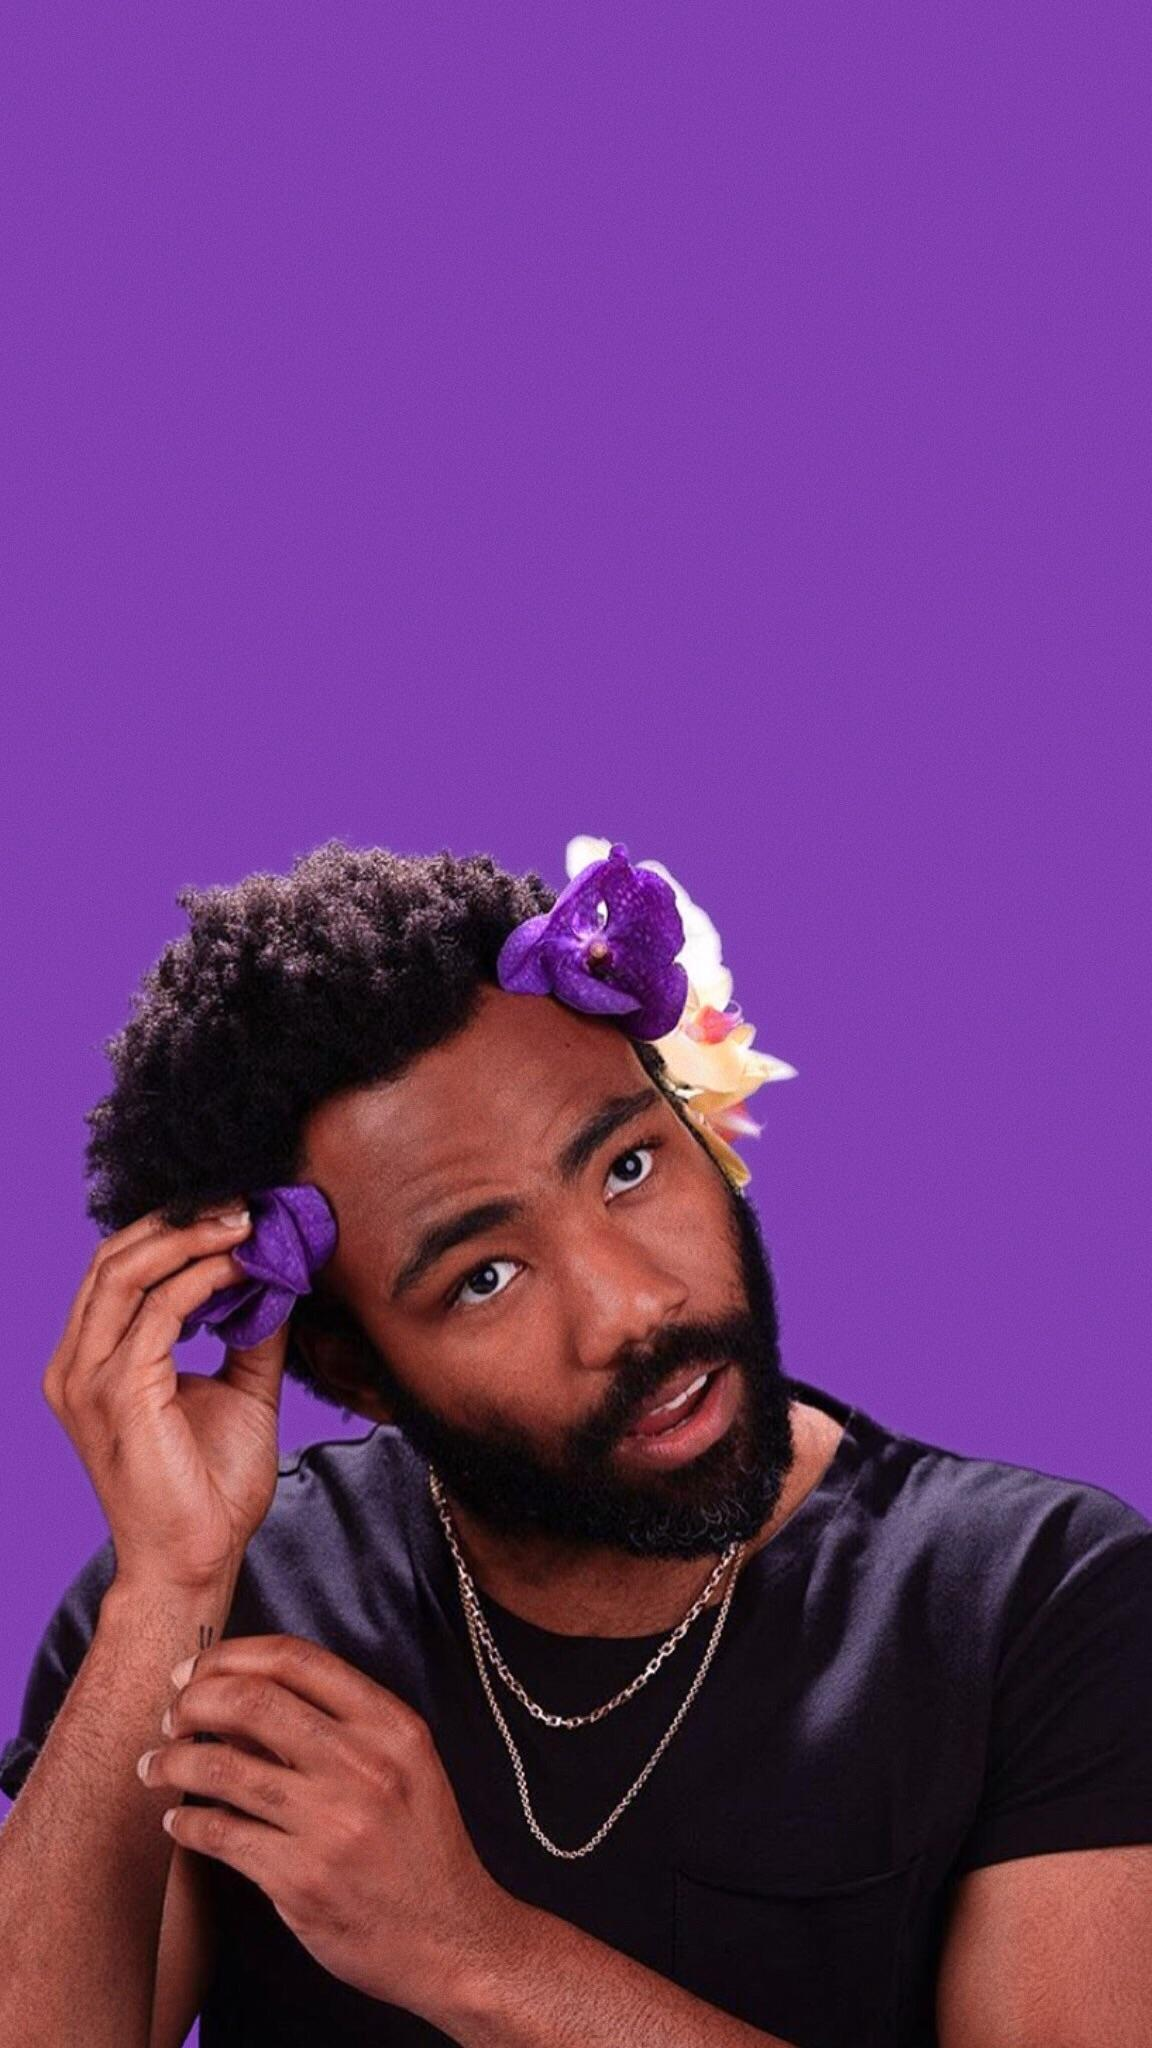 Donald Glover Hd Wallpapers Wallpaper Cave